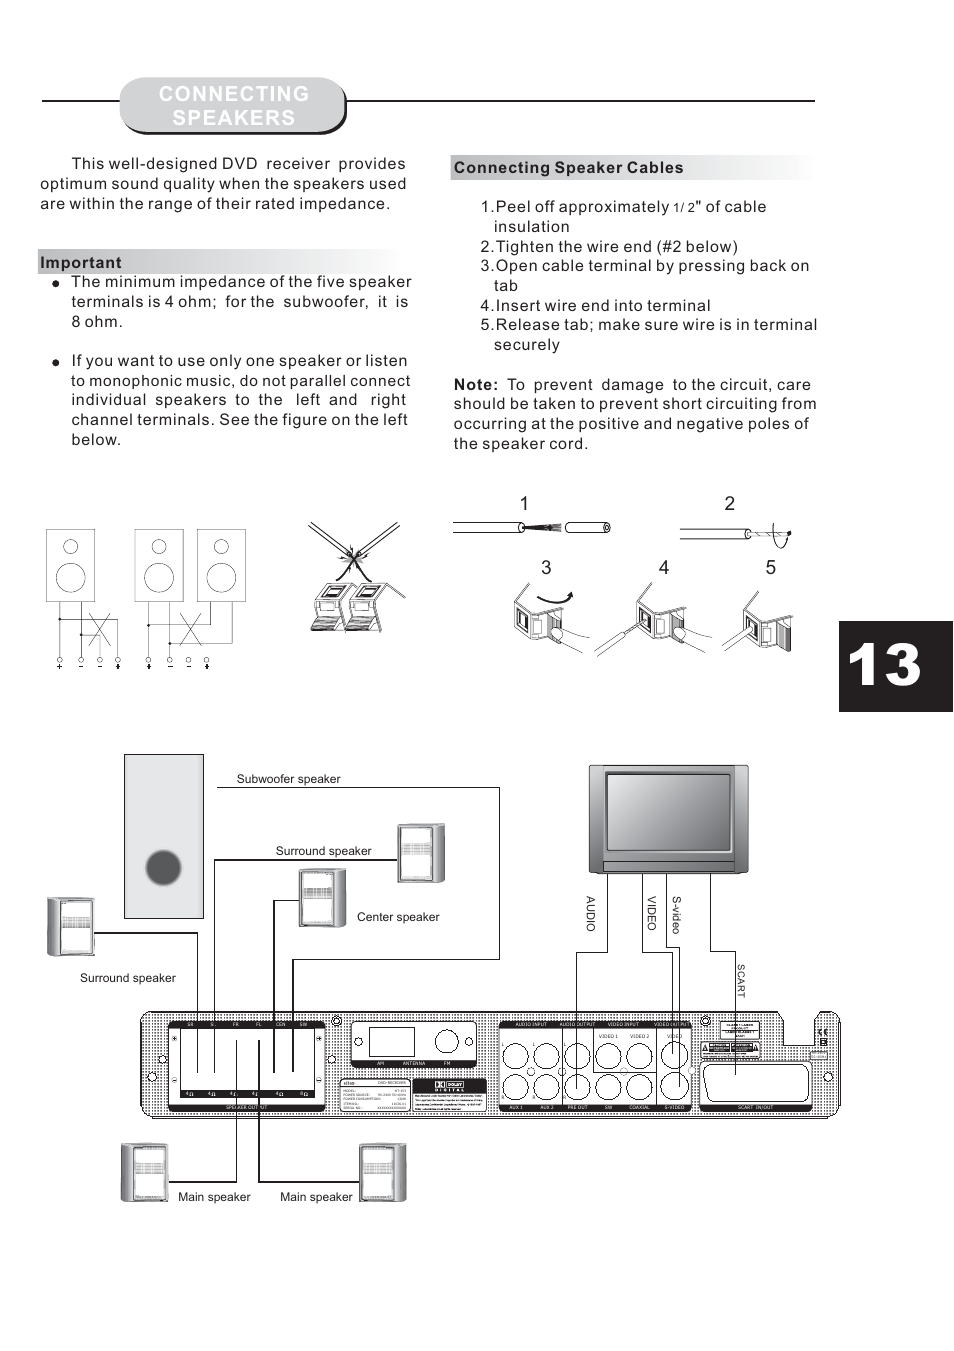 Connecting Speakers Eltax Ht 153 User Manual Page 13 32 Wiring Add The 2 Impedance Together For Parallel